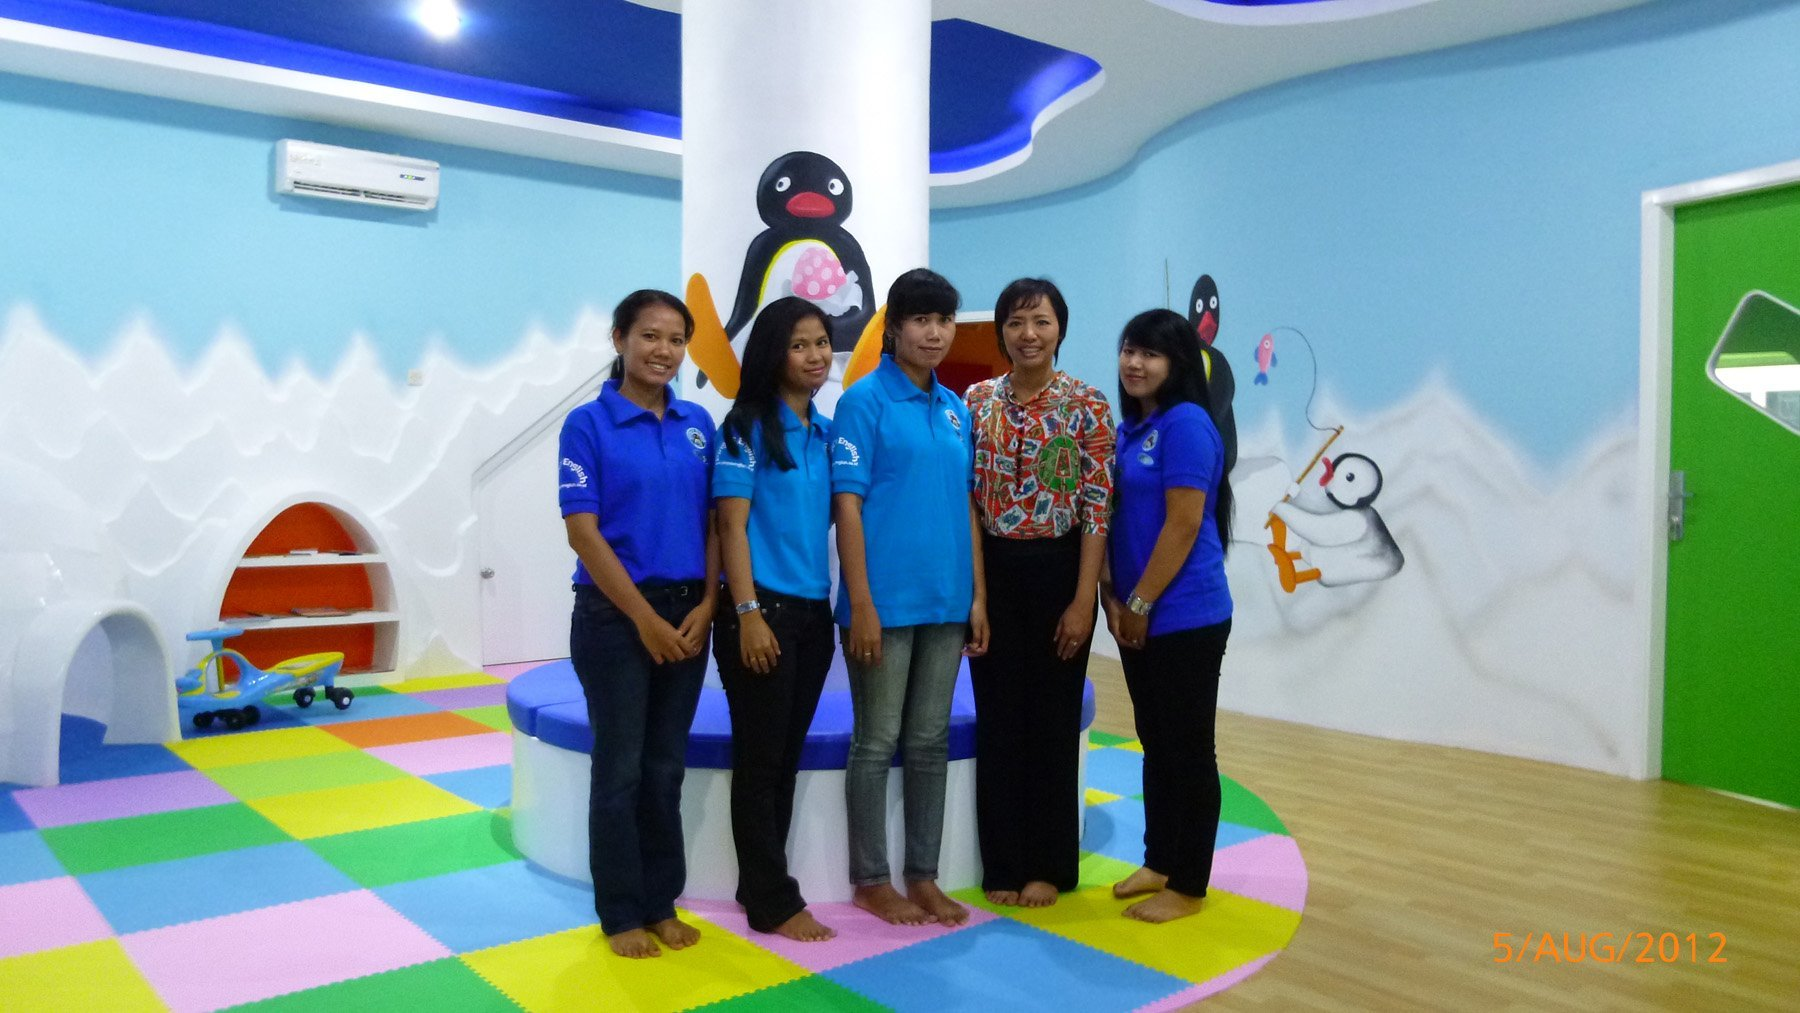 Pingus_English_Lampang1